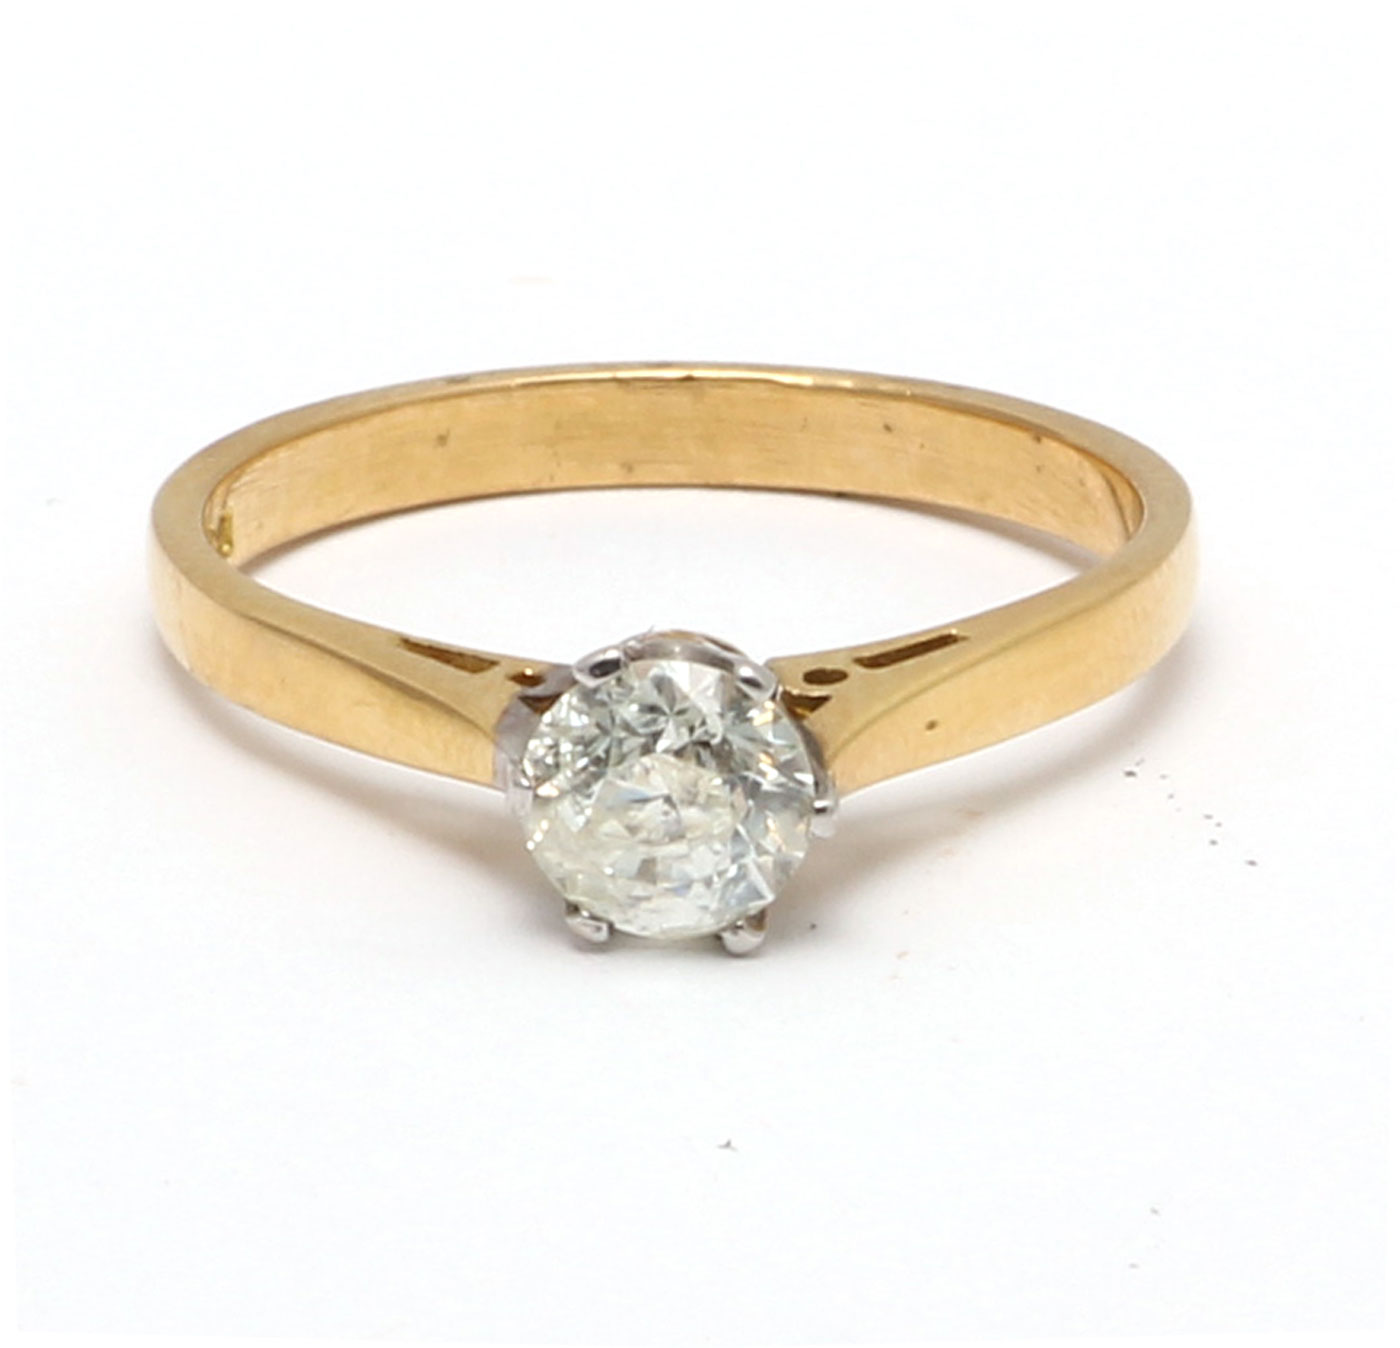 18ct Yellow Gold Diamond Engagement Ring 0.61 Carats - Image 5 of 6